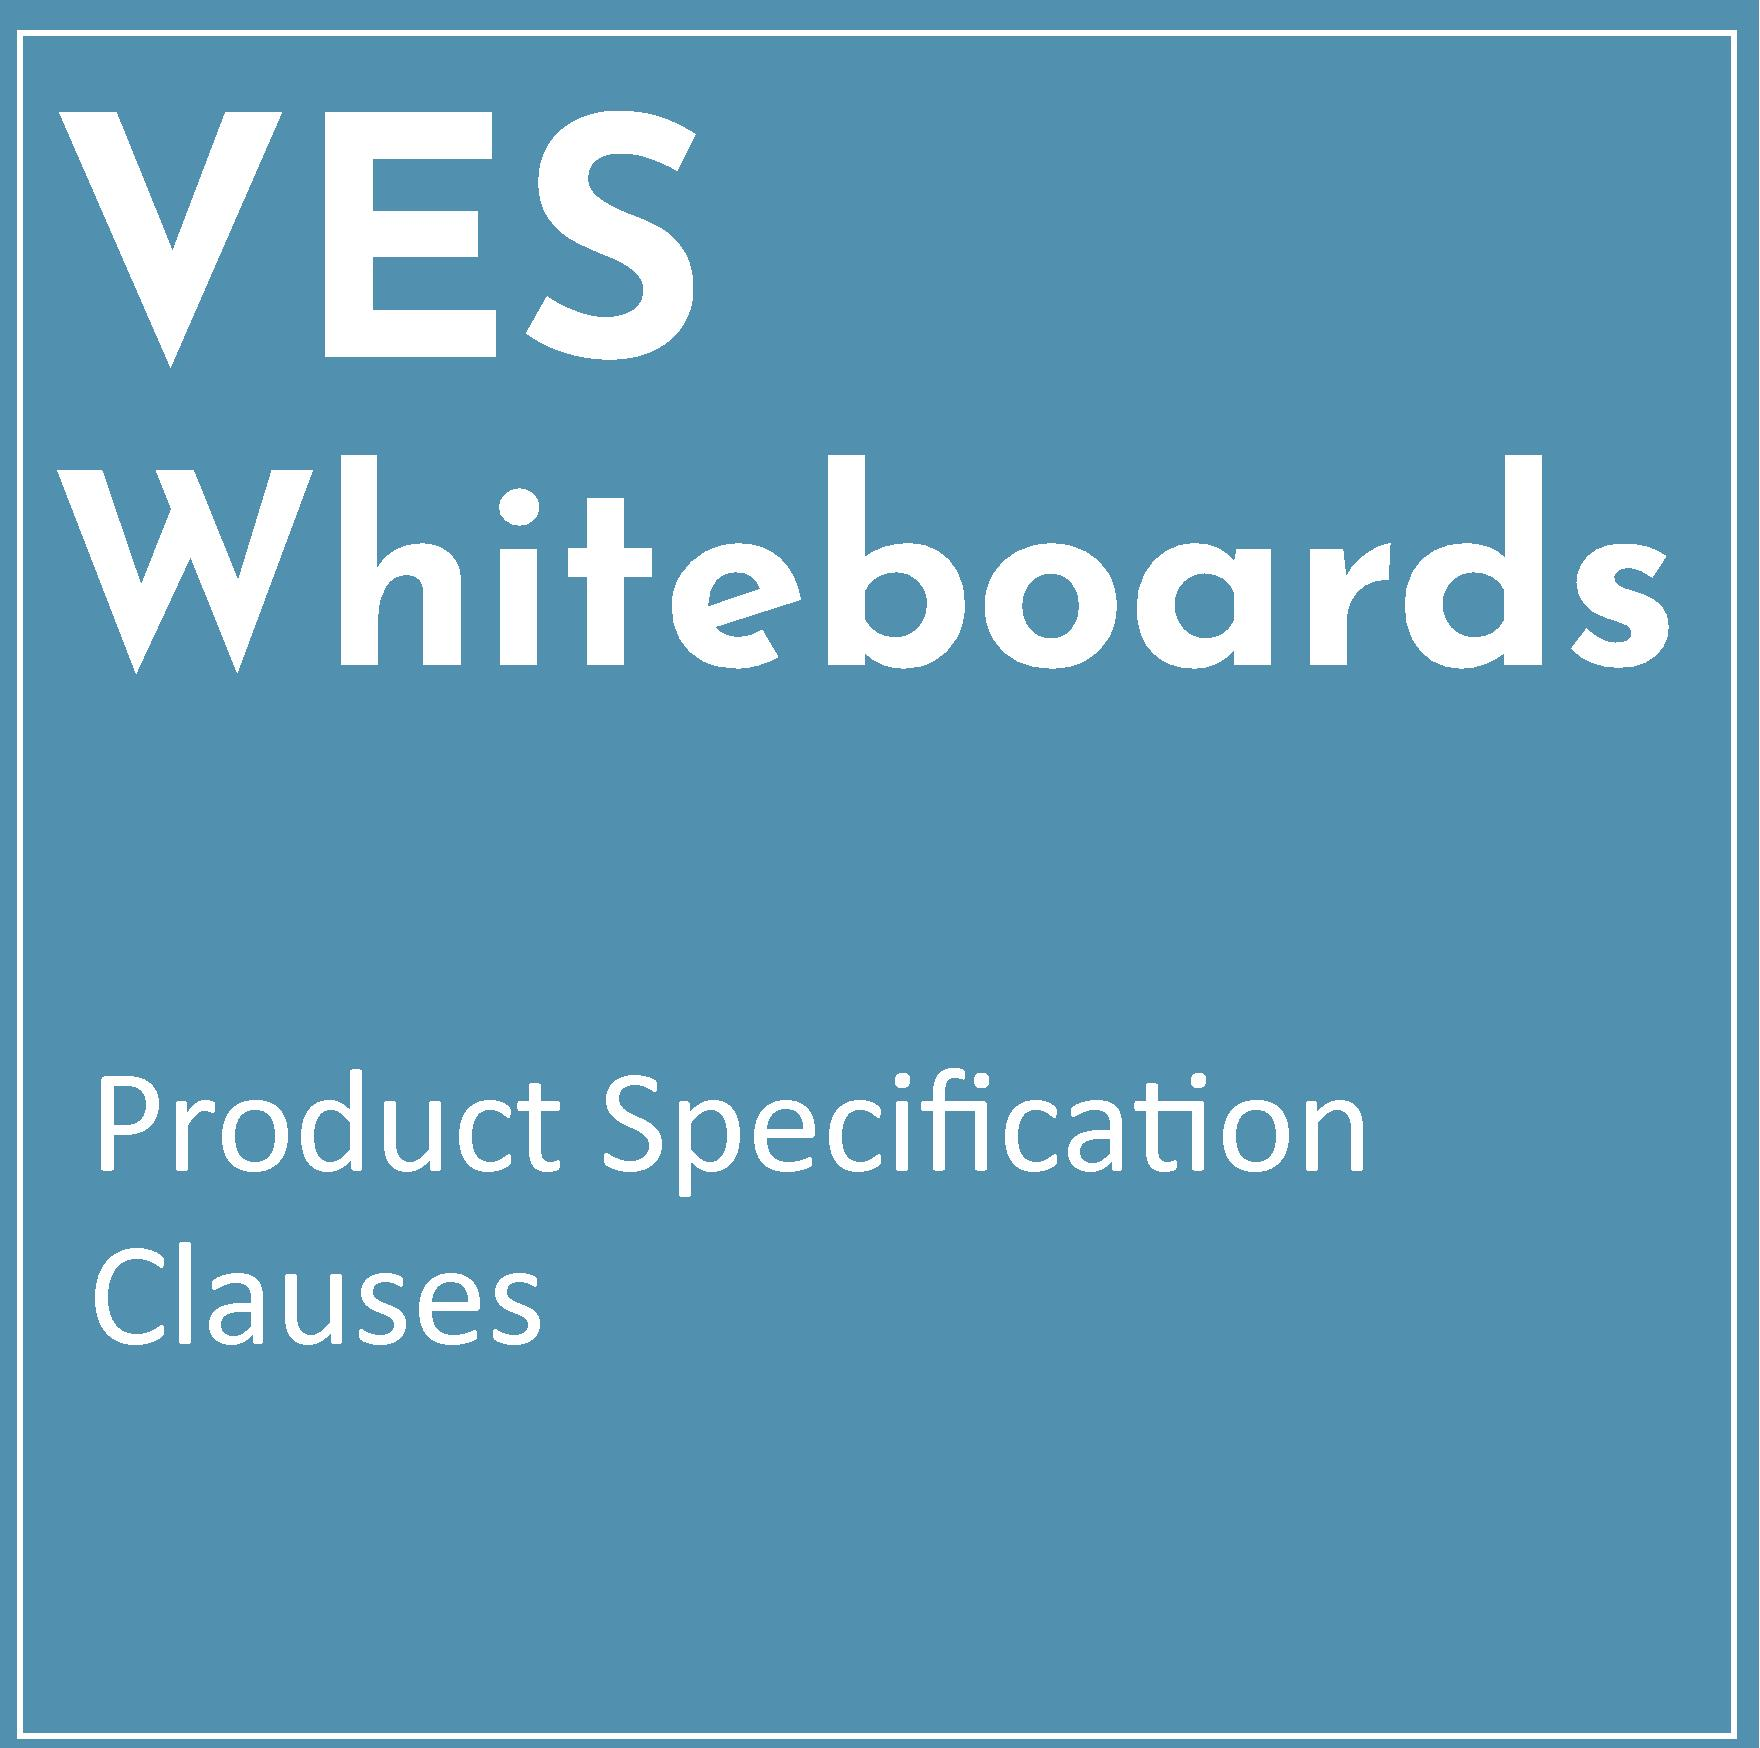 Product Specification Clause – VES Whiteboard